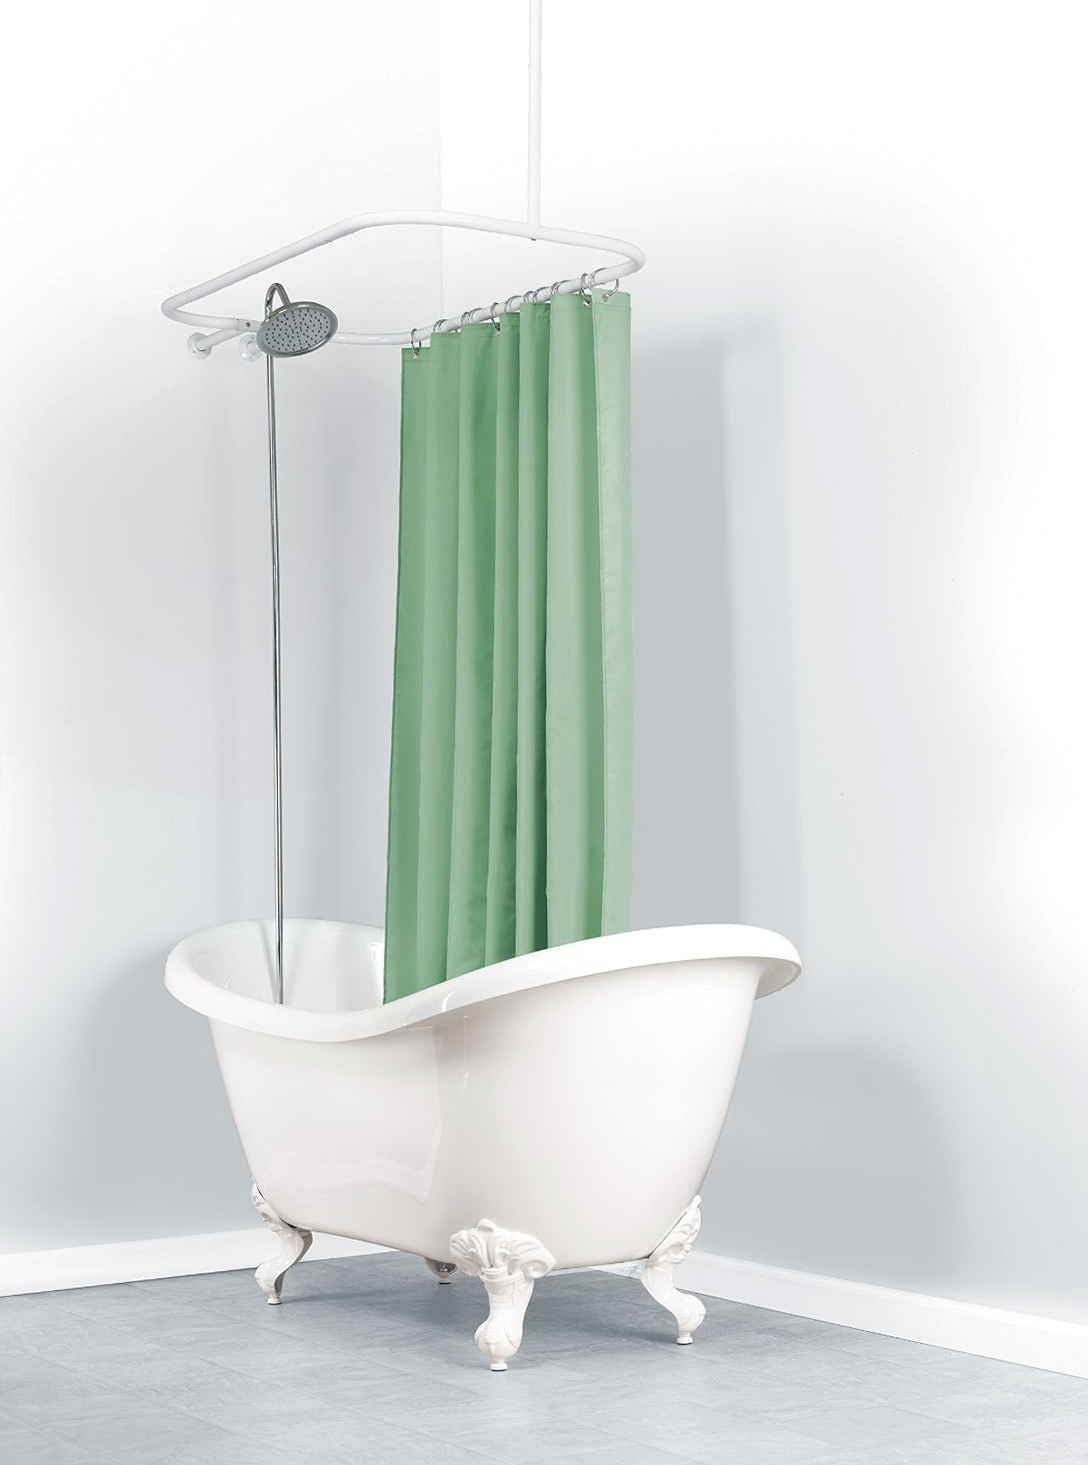 Shower Curtain Rod For Clawfoot Tub Canada Home Design Ideas